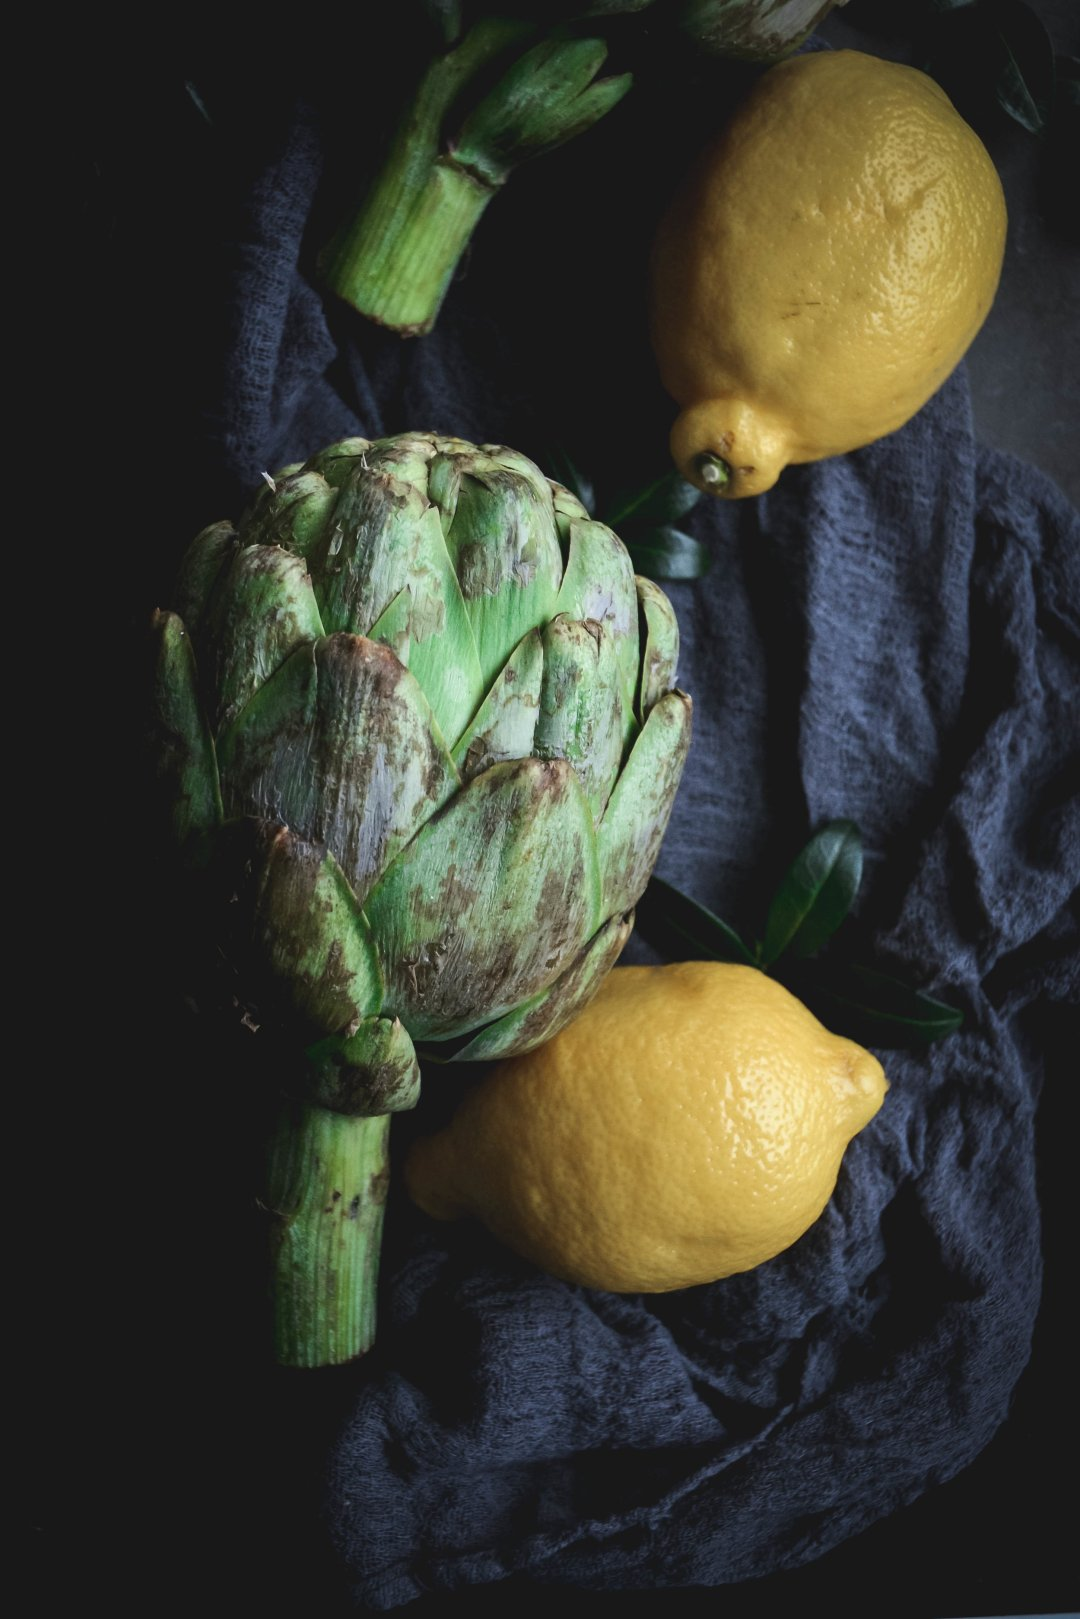 artichoke on dark napkin with whole lemons